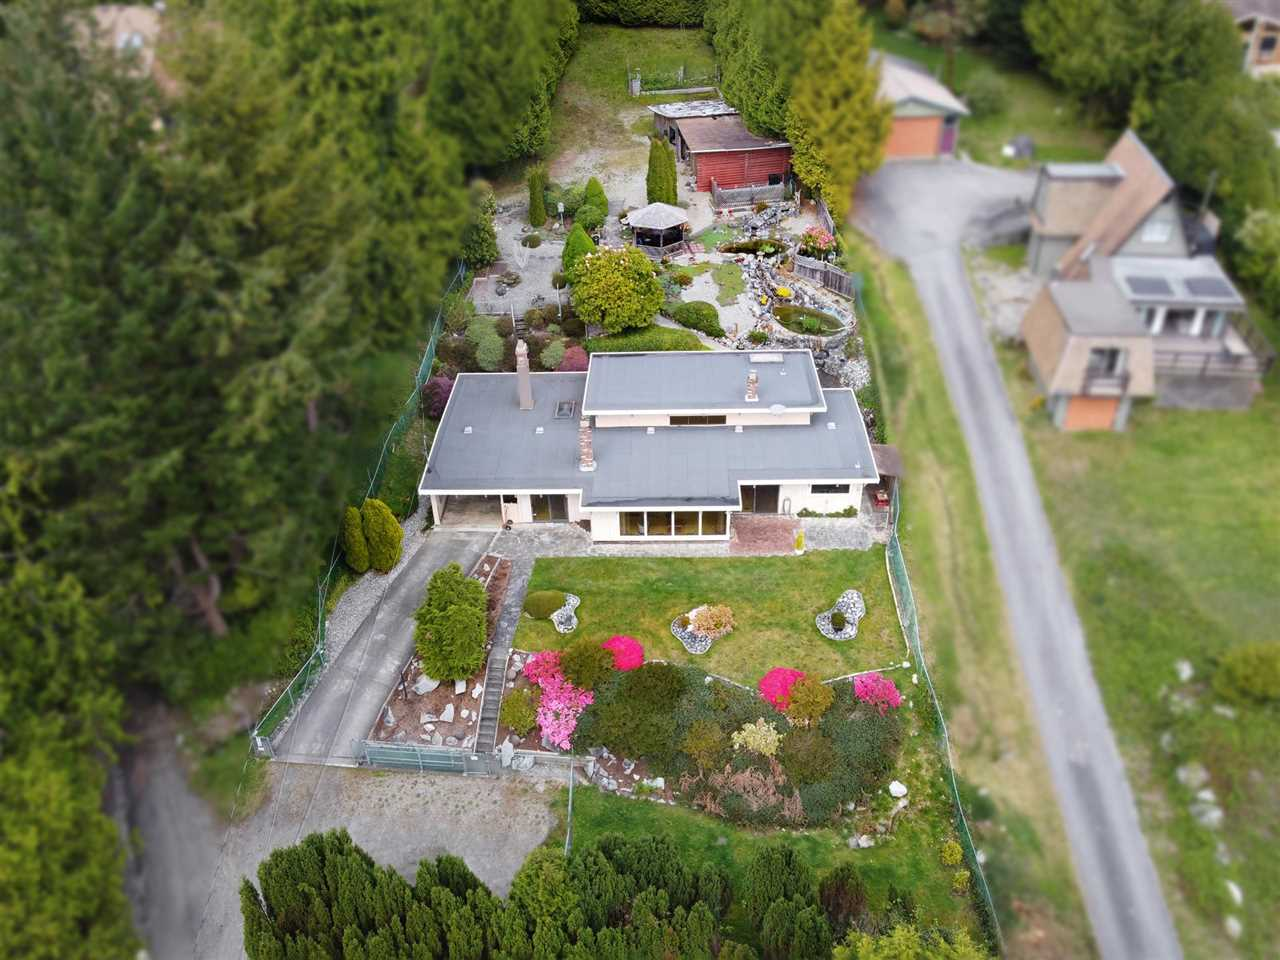 5430 LAWSON ROAD - Sechelt District House/Single Family for sale, 2 Bedrooms (R2576116) - #1